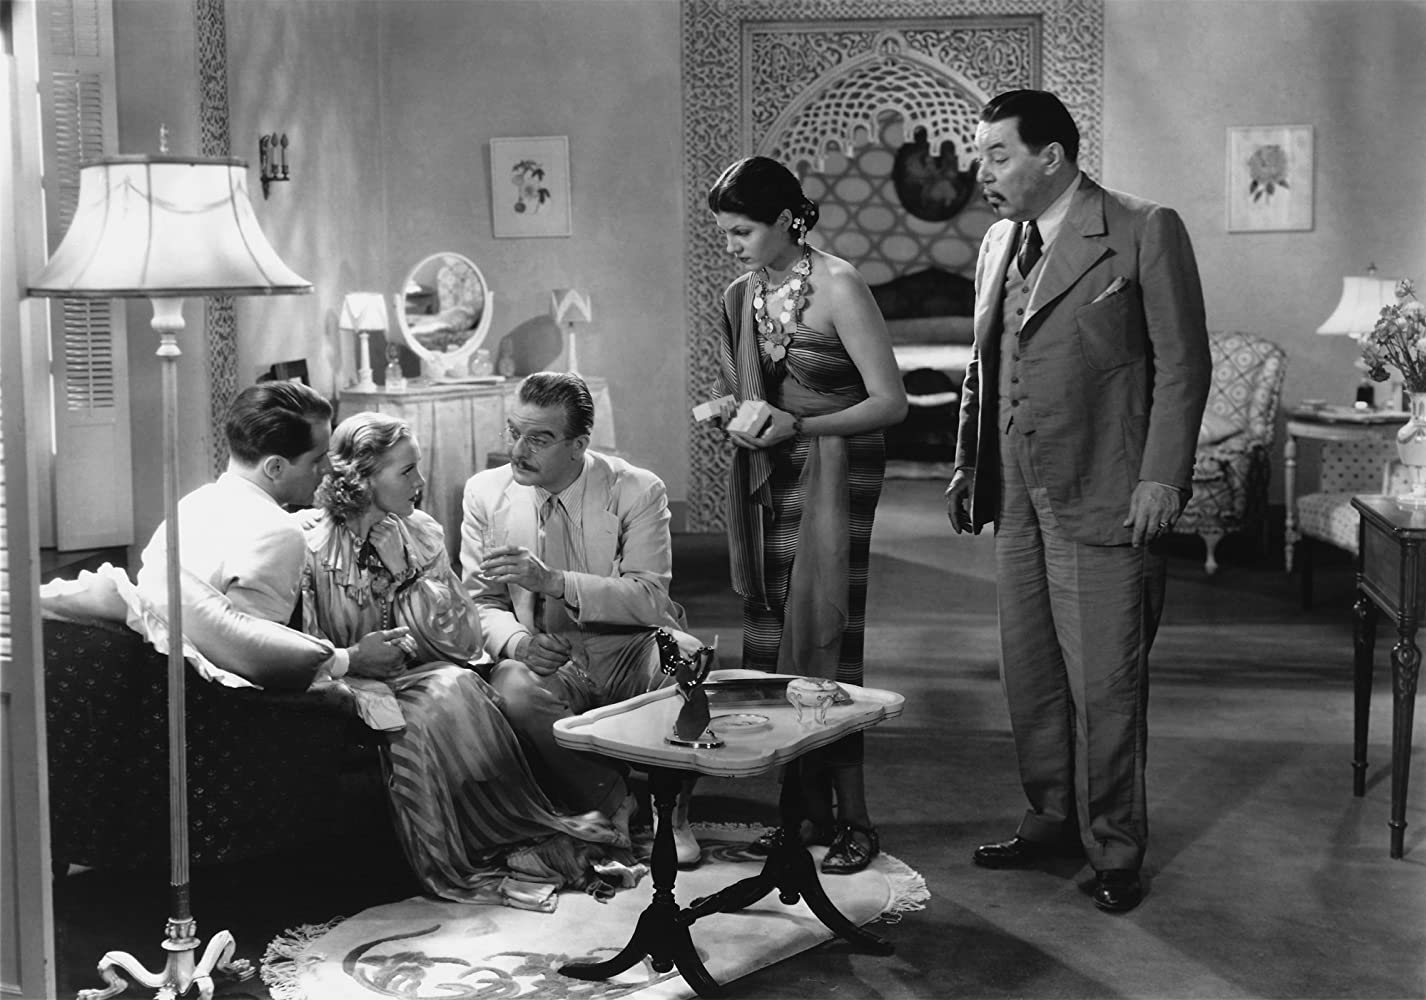 Rita Hayworth, Thomas Beck, Frank Conroy, Warner Oland, and Pat Paterson in Charlie Chan in Egypt (1935)